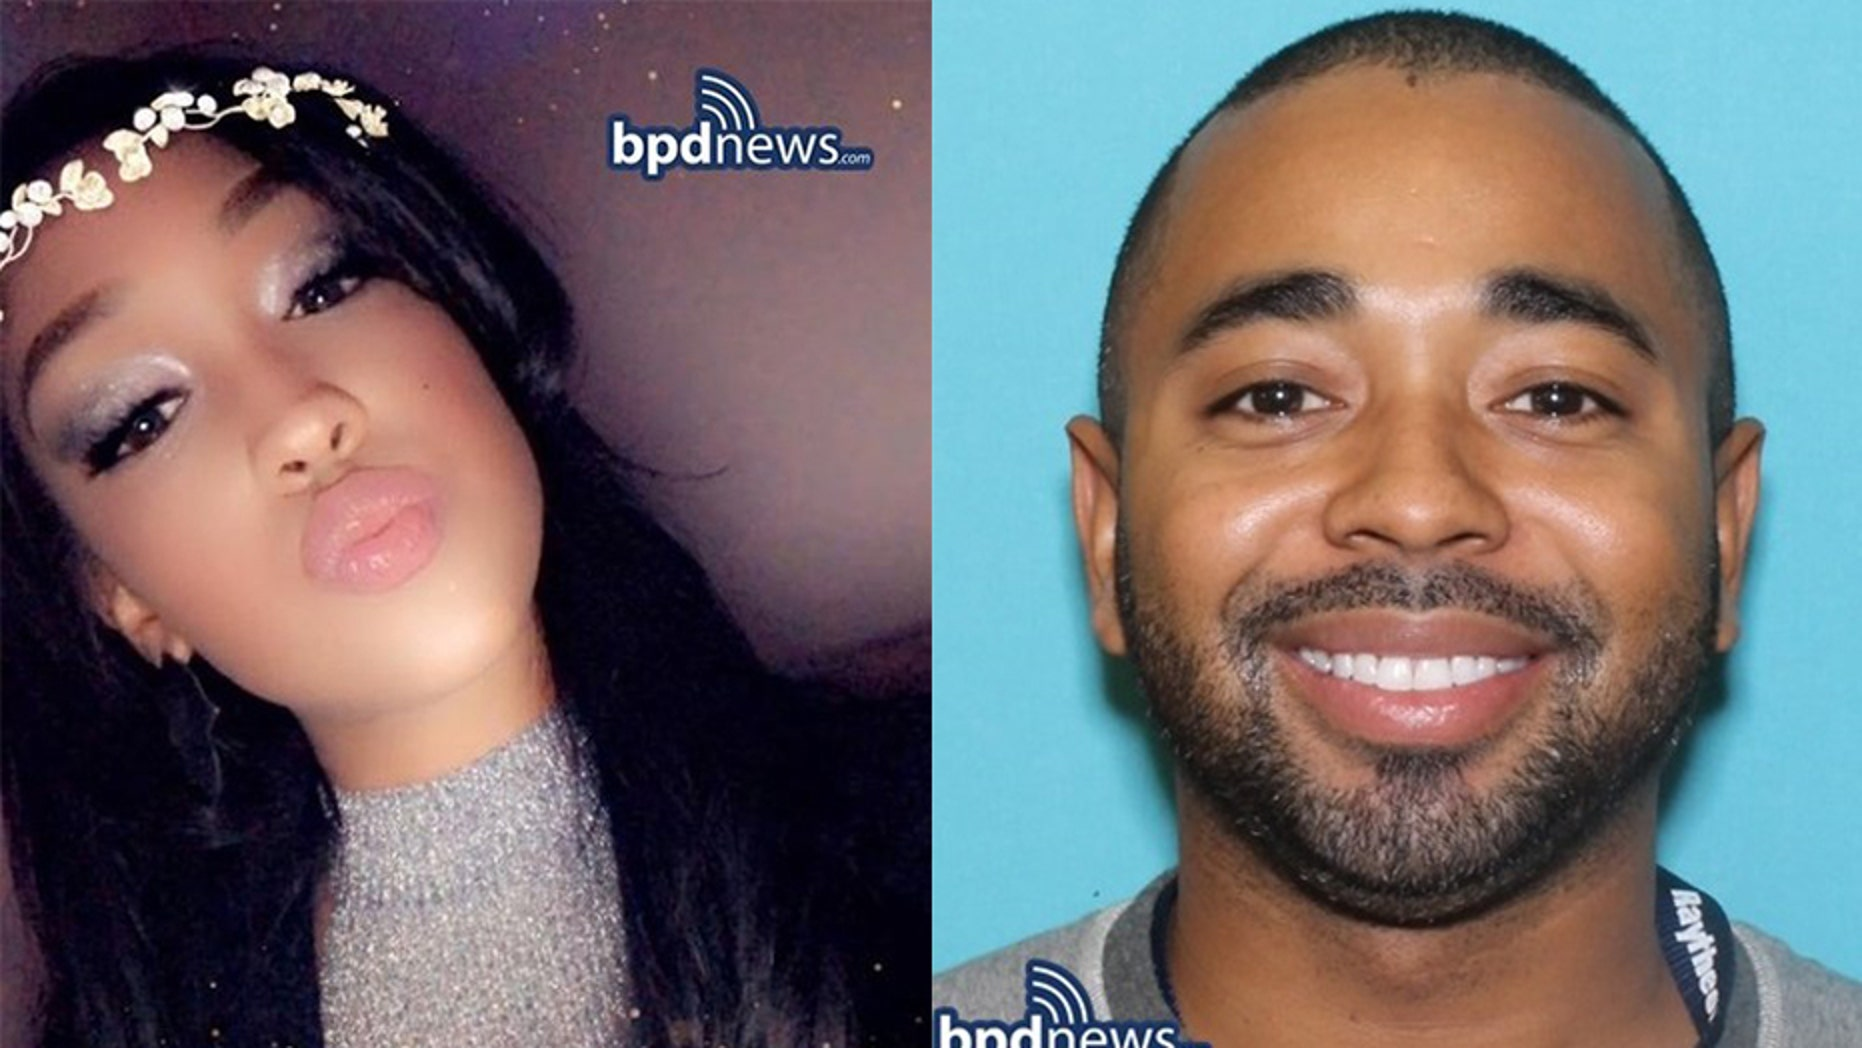 Boston police have identified a suspect, Louis D. Coleman III, 32, [right] who is wanted in connection with a missing mother, Jassy Correia, 23, [left] who was last seen leaving a nightclub early Sunday.